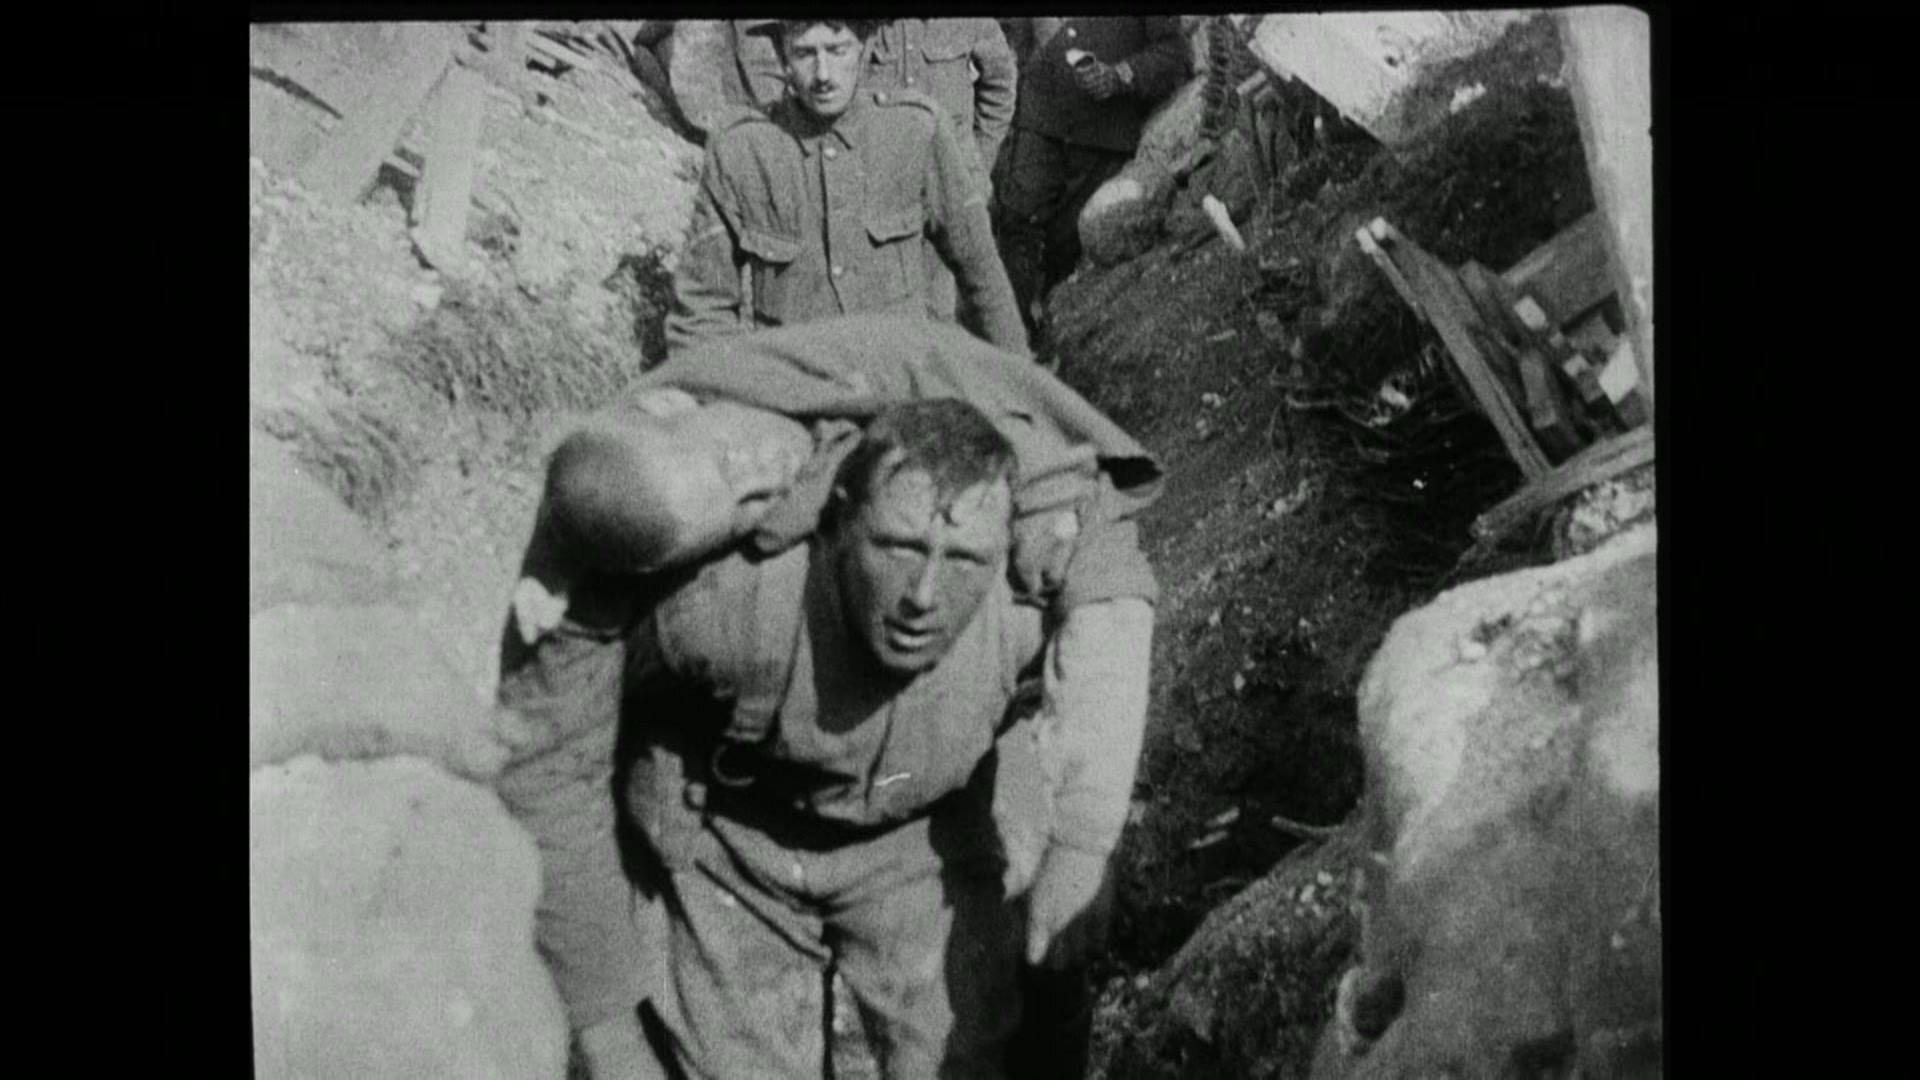 Battle of the Somme film featuring Lancashire Fusiliers re-released